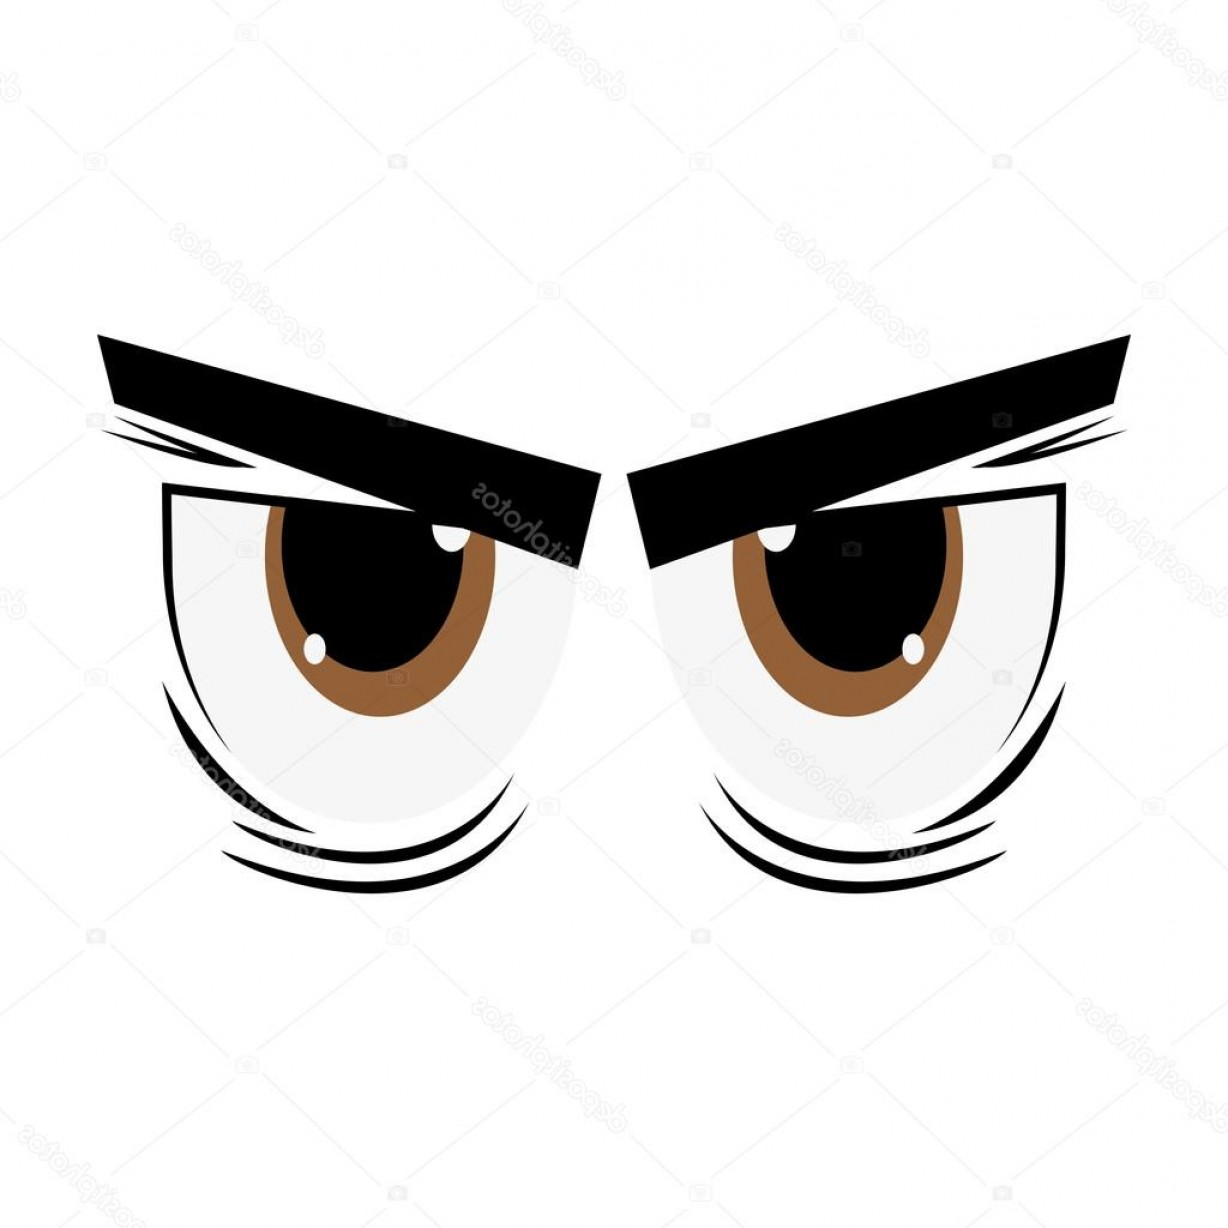 Angry Eyebrow Vector: Stock Illustration Angry Cartoon Eyes Icon